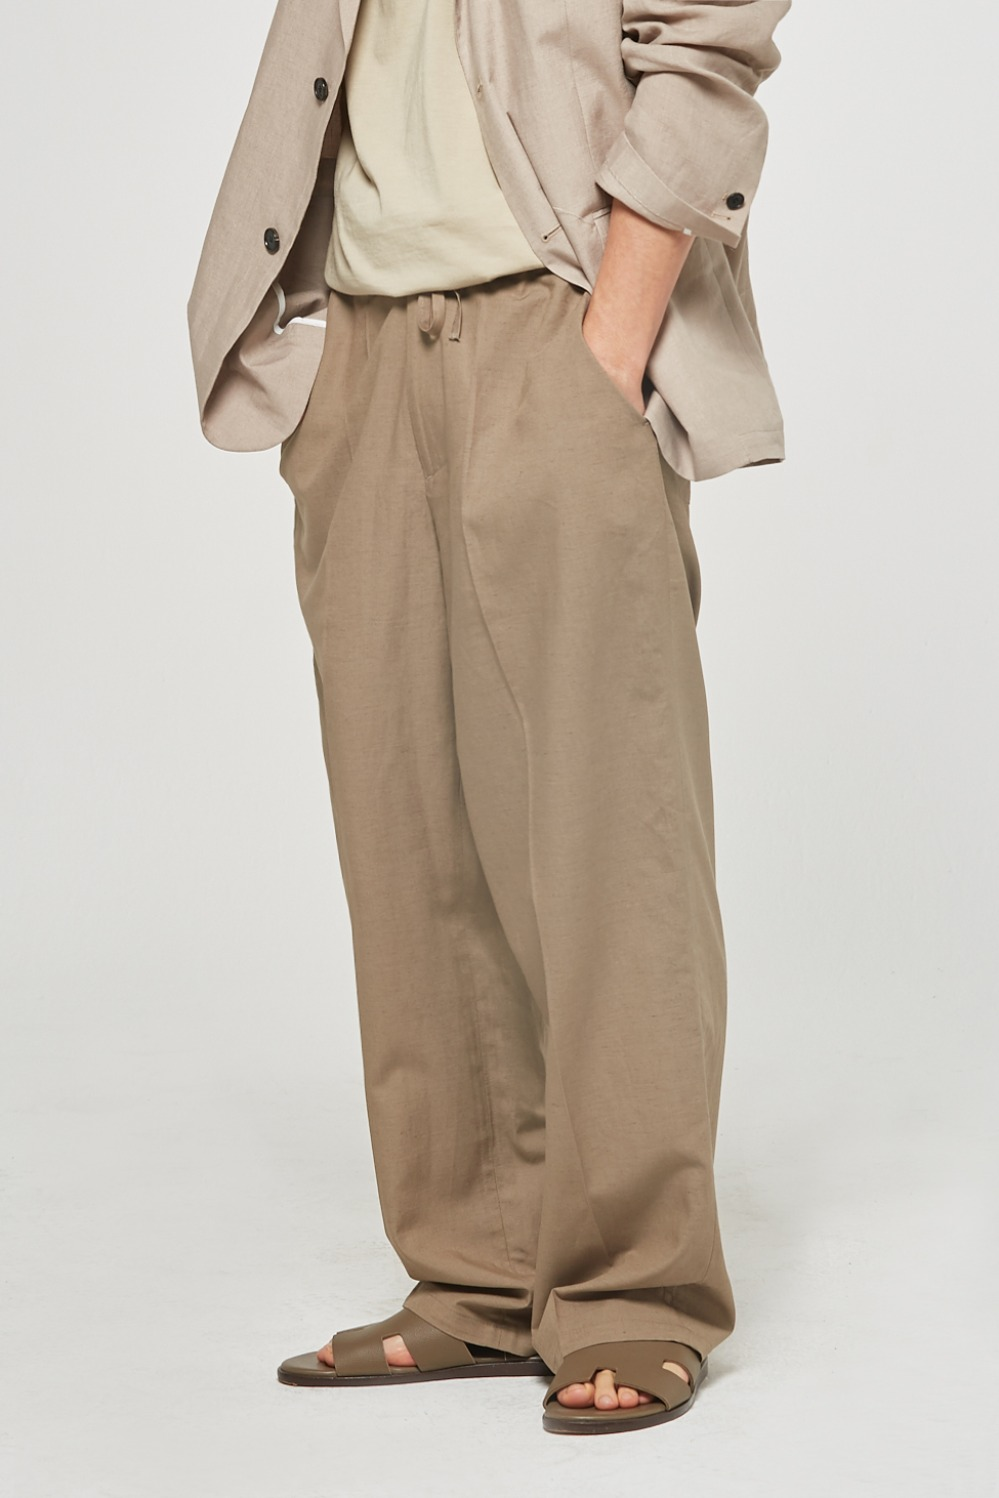 Linen Pocket Wide Pants (Khaki Beige)